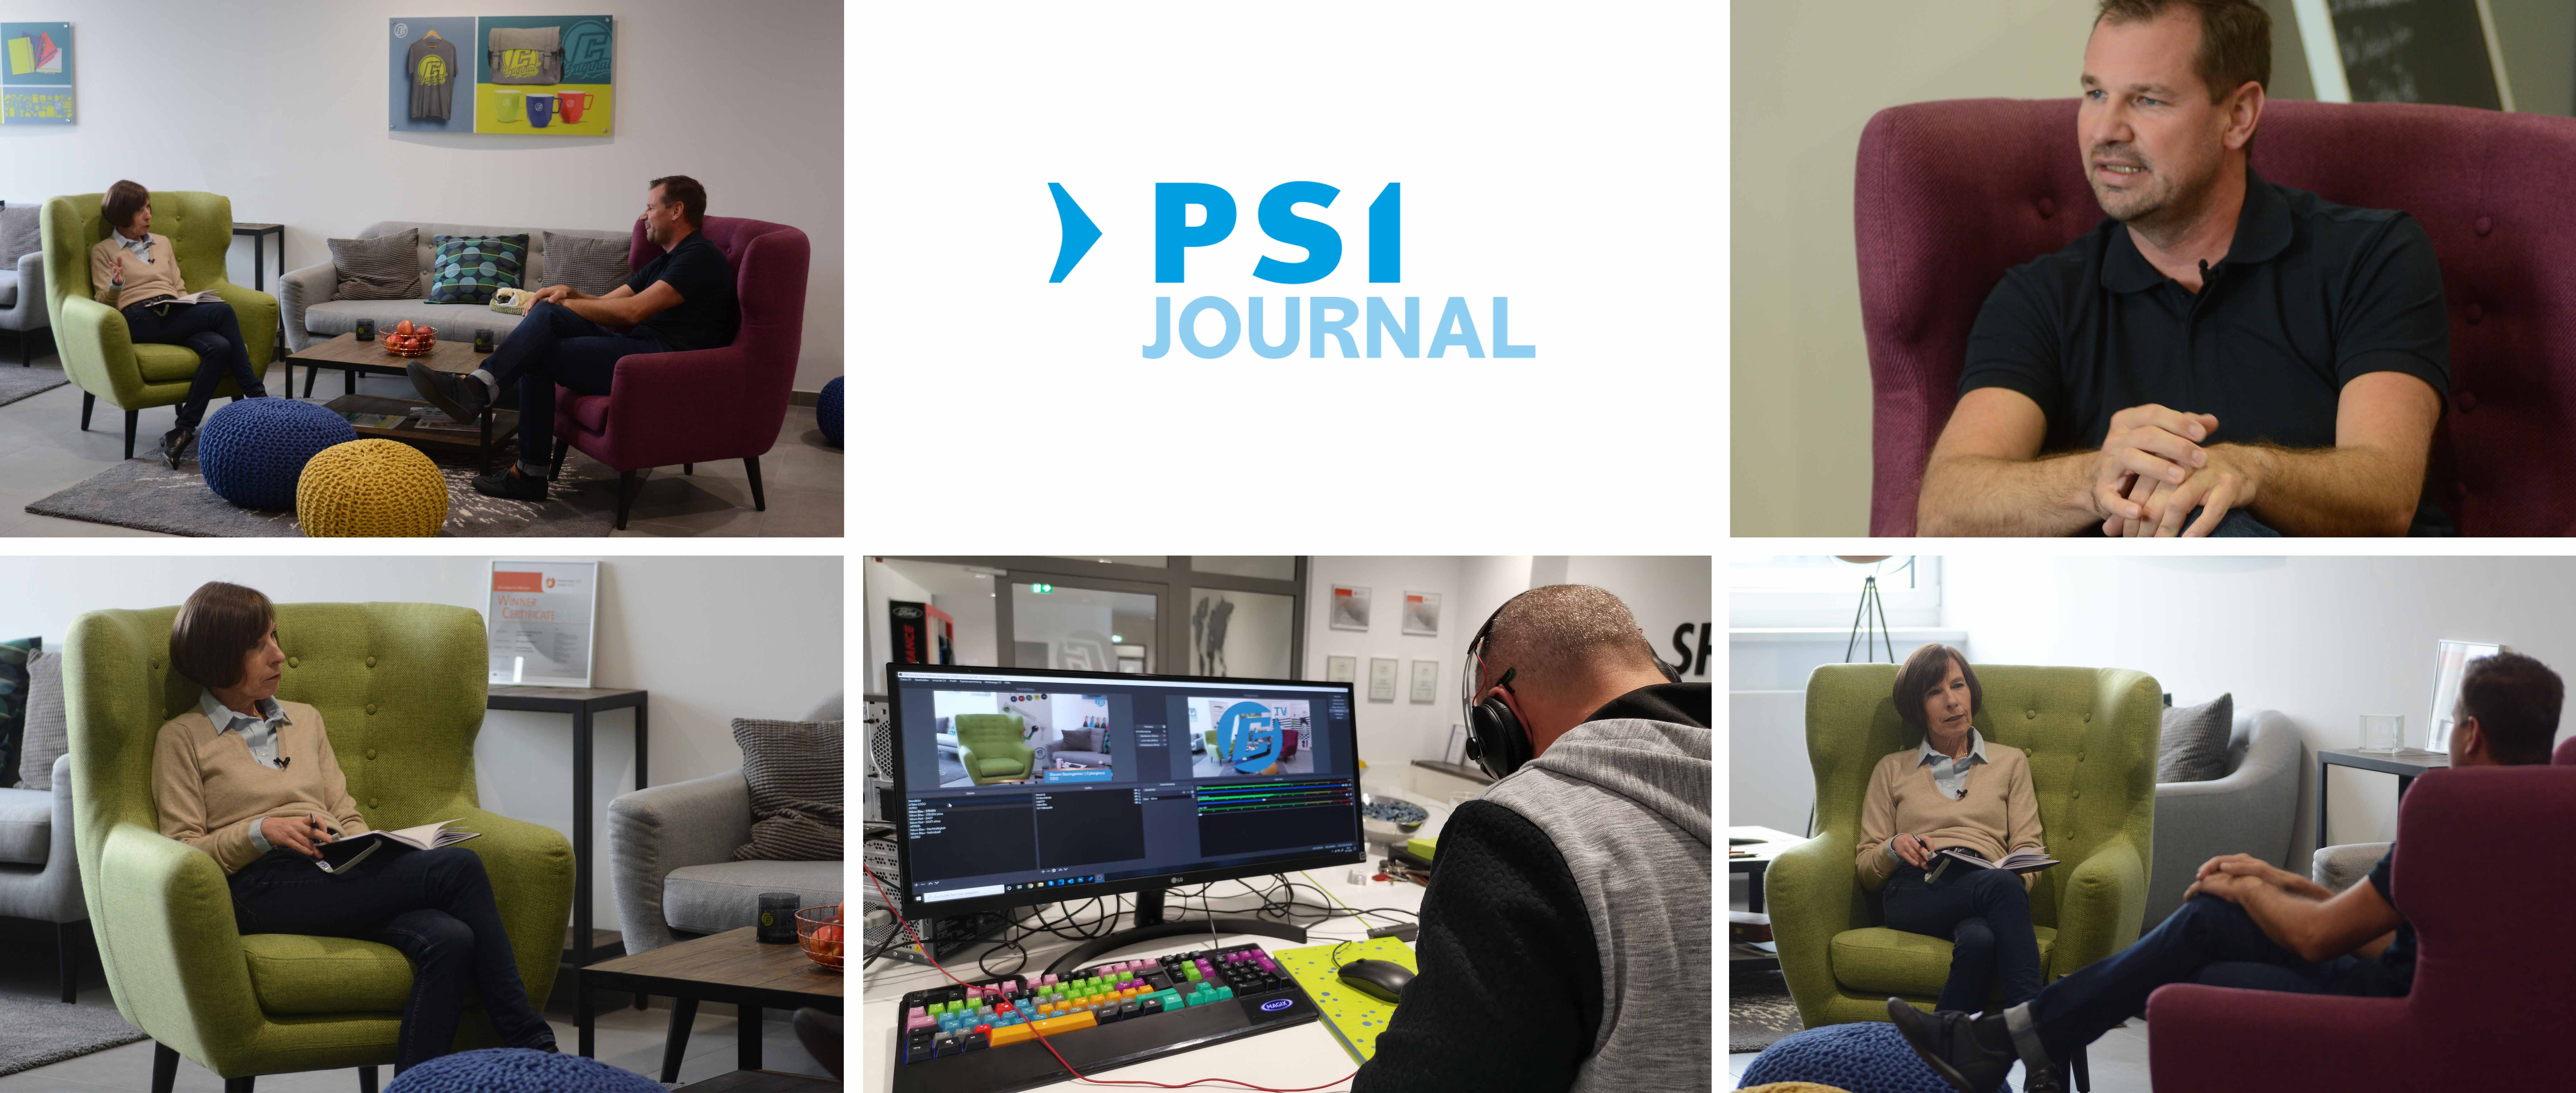 PSI Journal